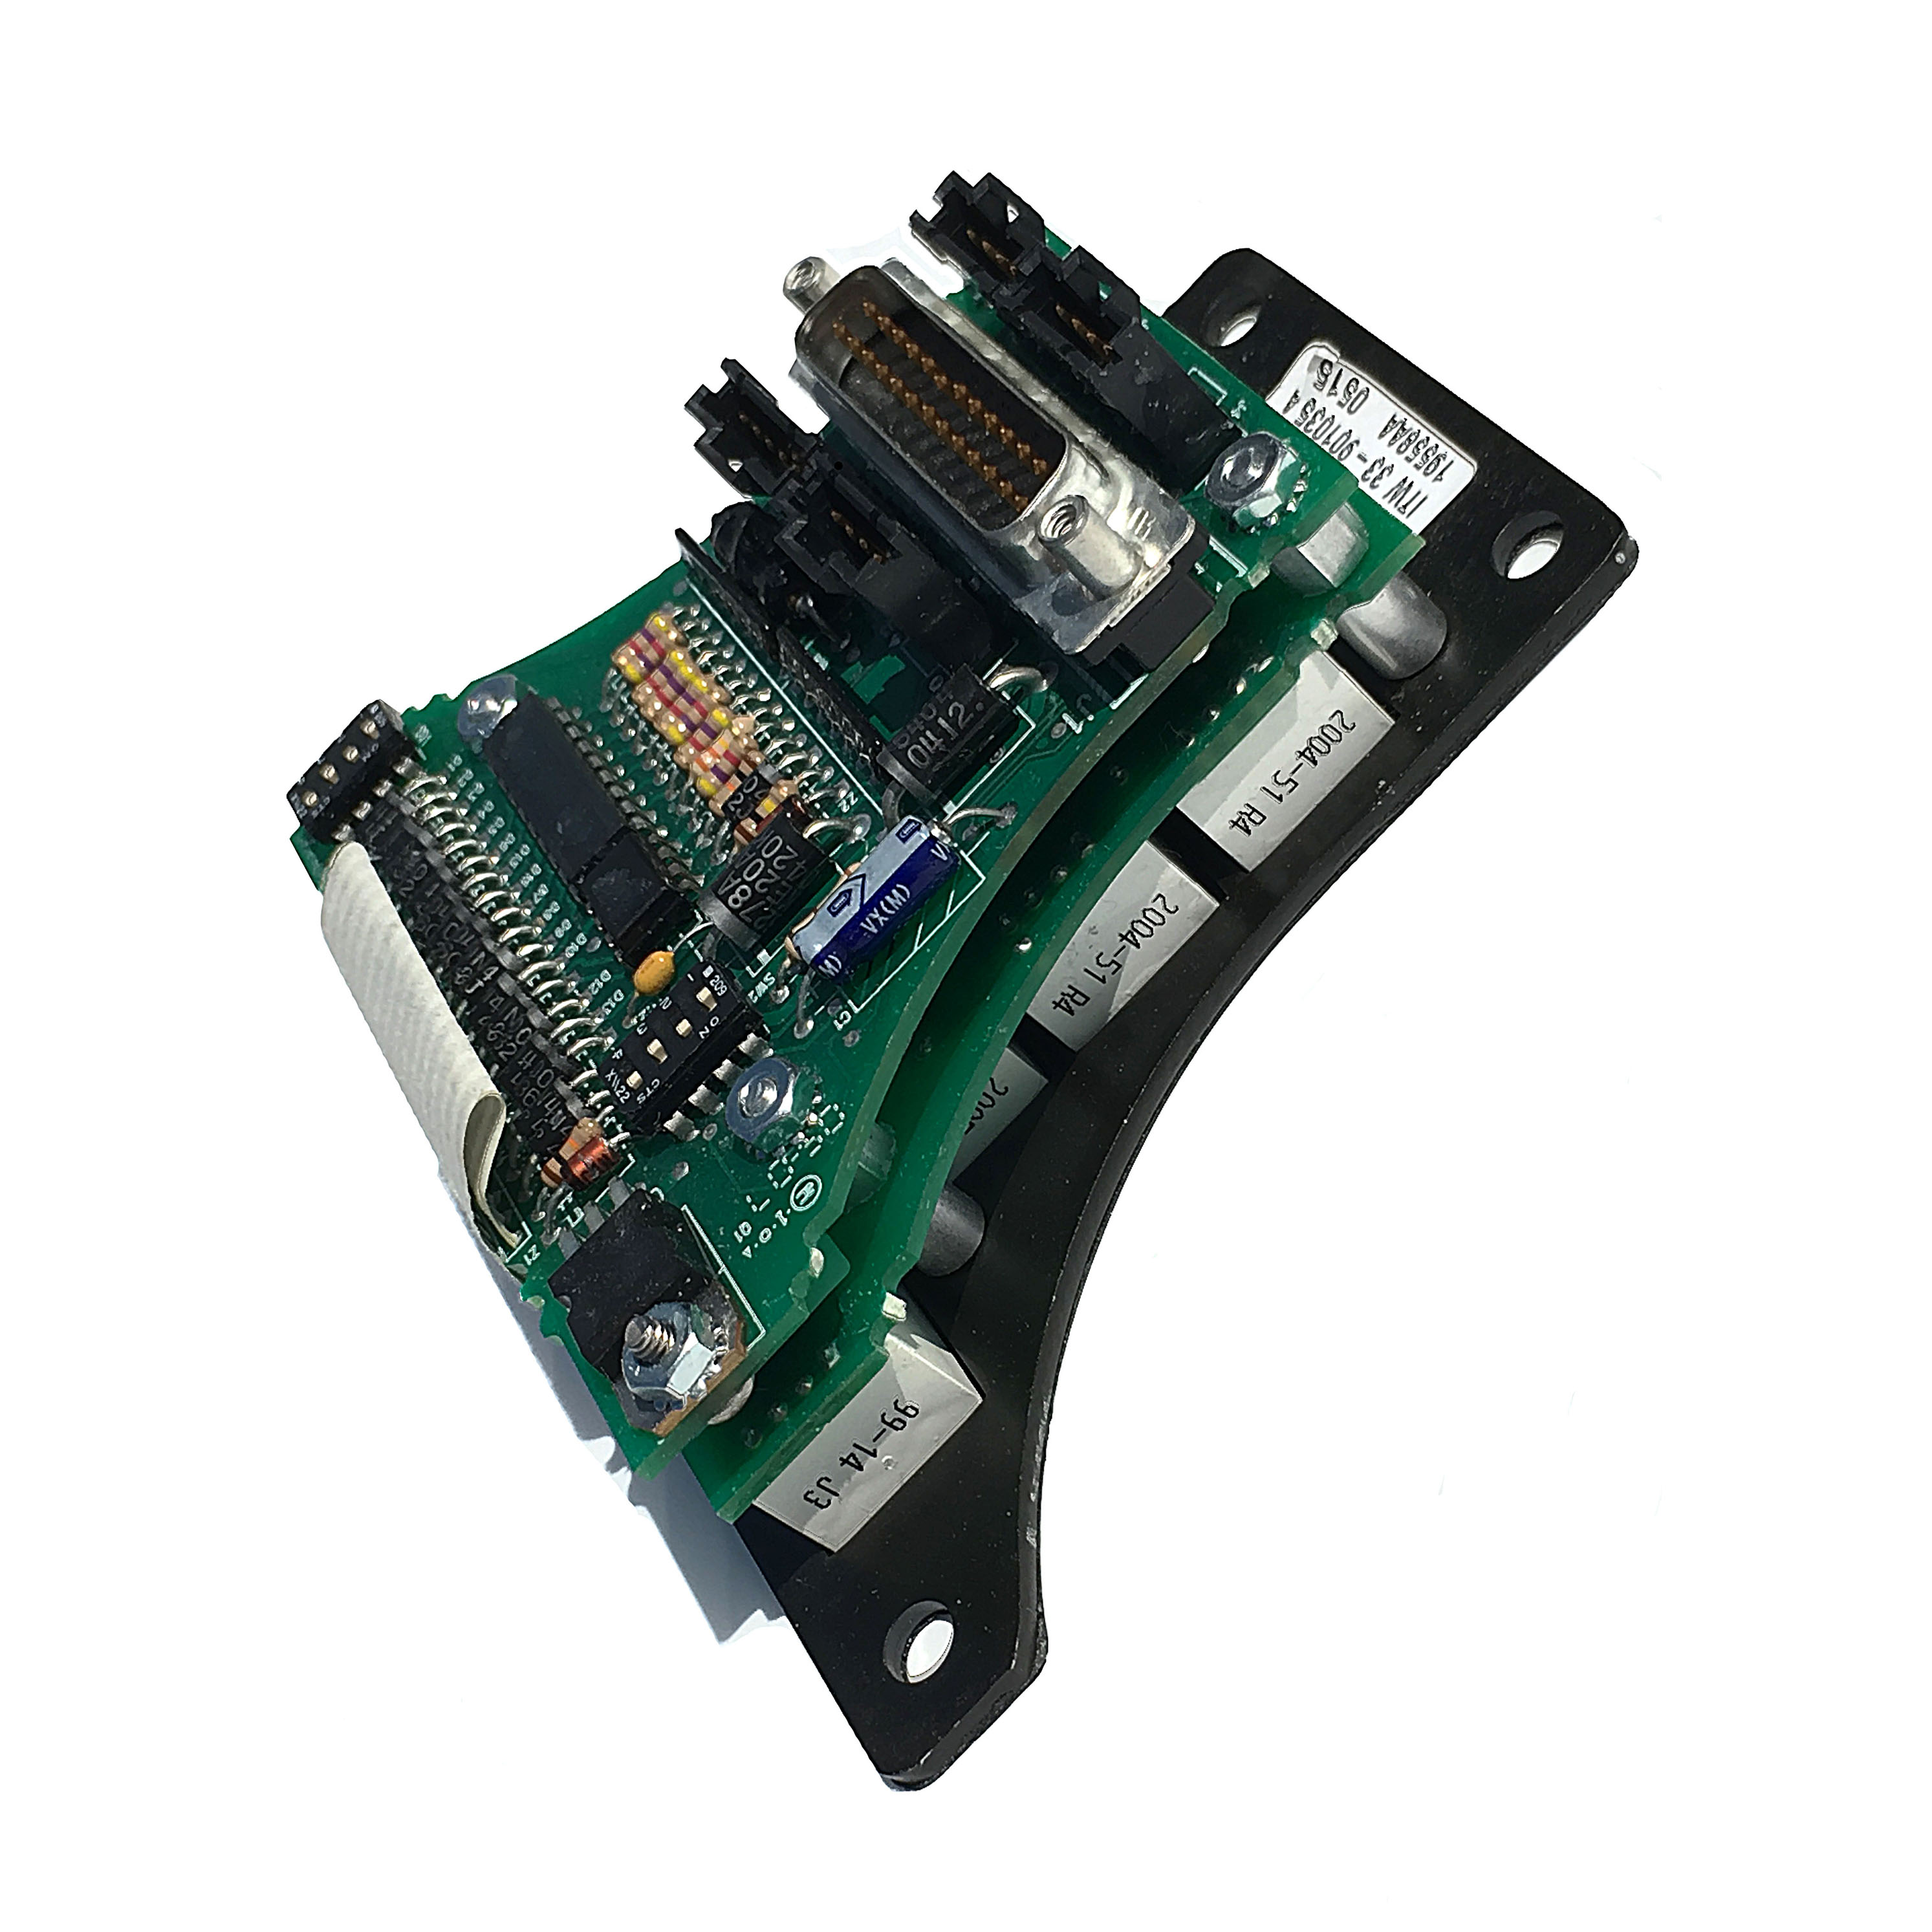 Pcba Box Build Assembly Ampco Manufacturers Oem Electronic Printed Circuit Board Process Supply 26 Jan 2018 Circuits